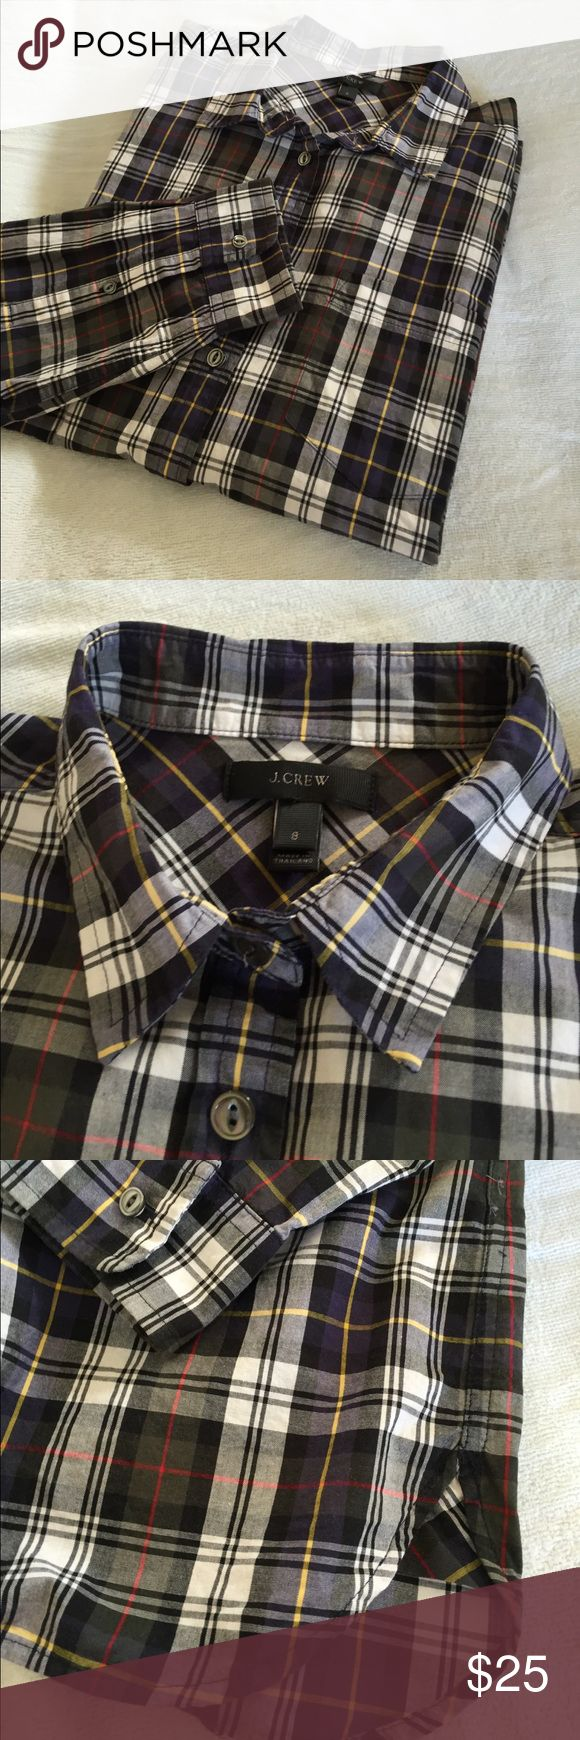 "🆕 J. Crew shrunken boy shirt in forest plaid EUC This J. Crew shirt is a slimmed down version of its popular ""boy"" cut. The cotton poplin is crisp without being stiff and the green/blue/black/ white plaid mixes with both denim and ""office pants""! Size 8. Measurements:  26.5"" long center back from base of collar; 20"" pit to pit; sleeves 23"" from shoulder seam. EUC; worn 2-3 times, freshly laundered and then stored. J. Crew Tops Button Down Shirts"